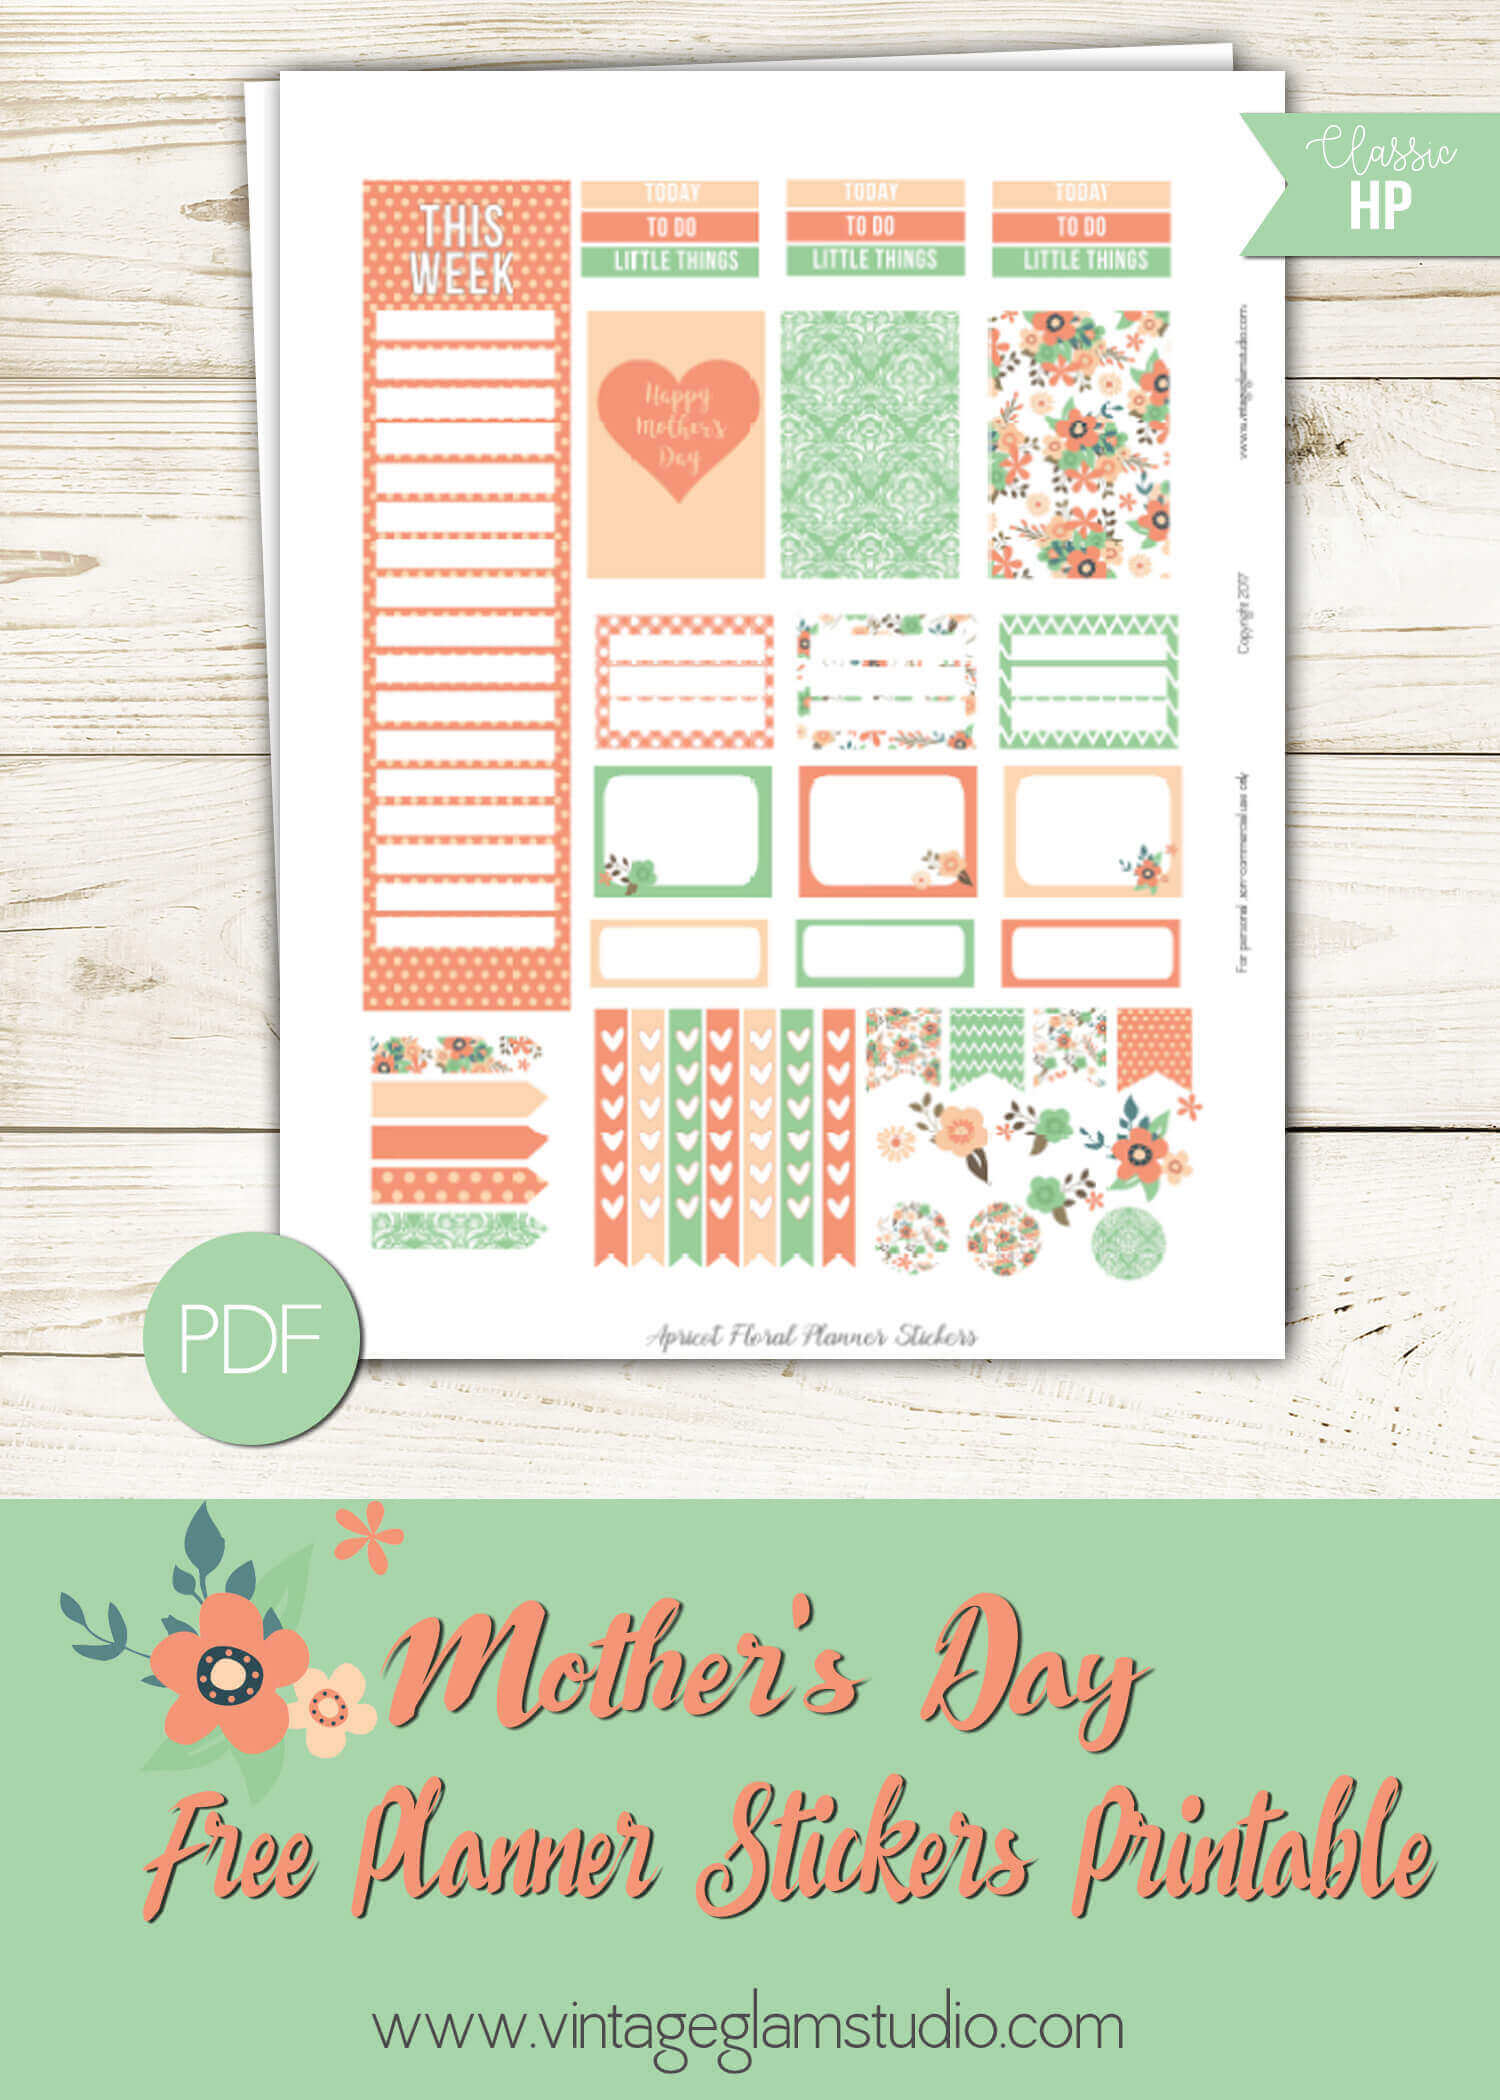 Apricot Floral Planner Stickers